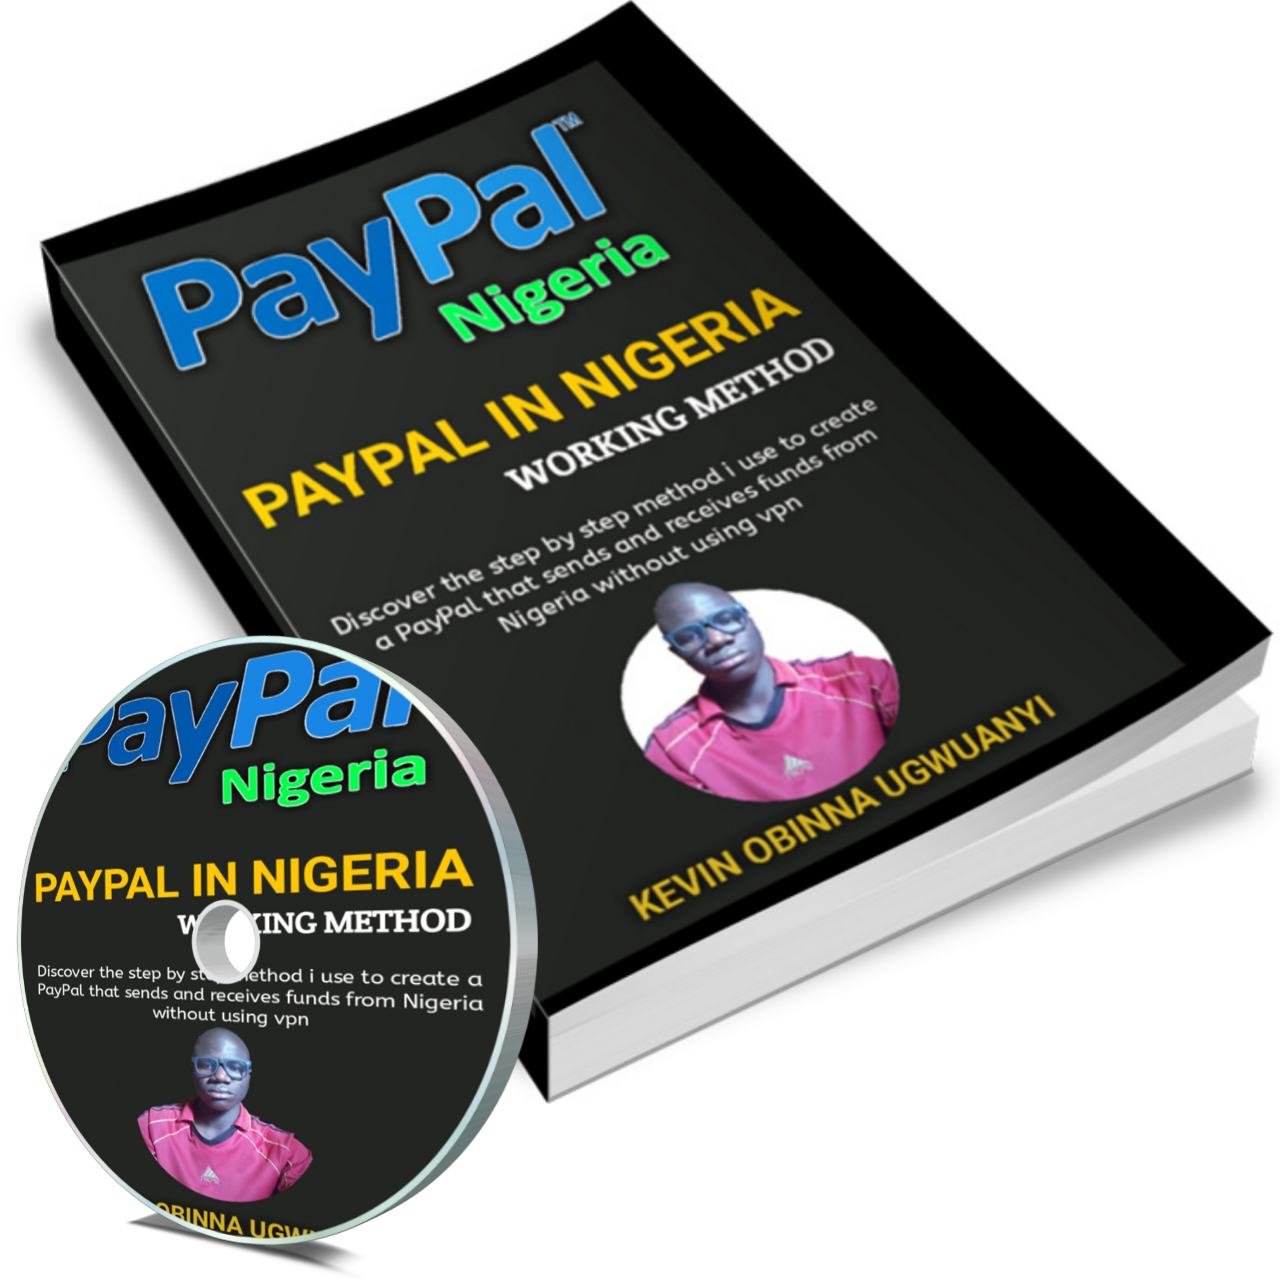 Paypal in Nigeria working method